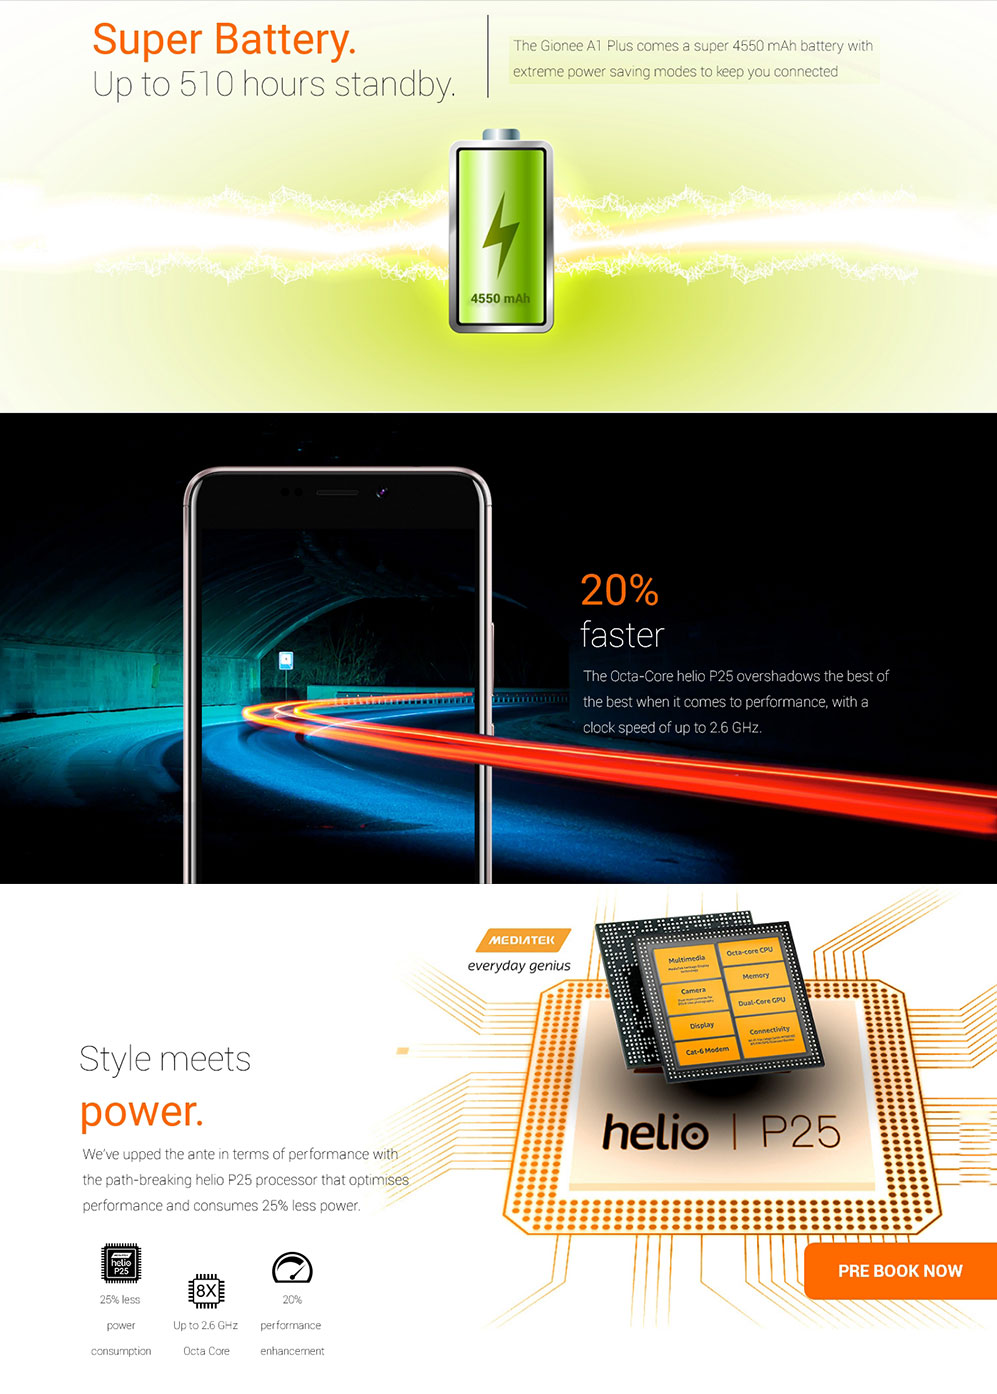 Gionee-A1-Plus-_-_06